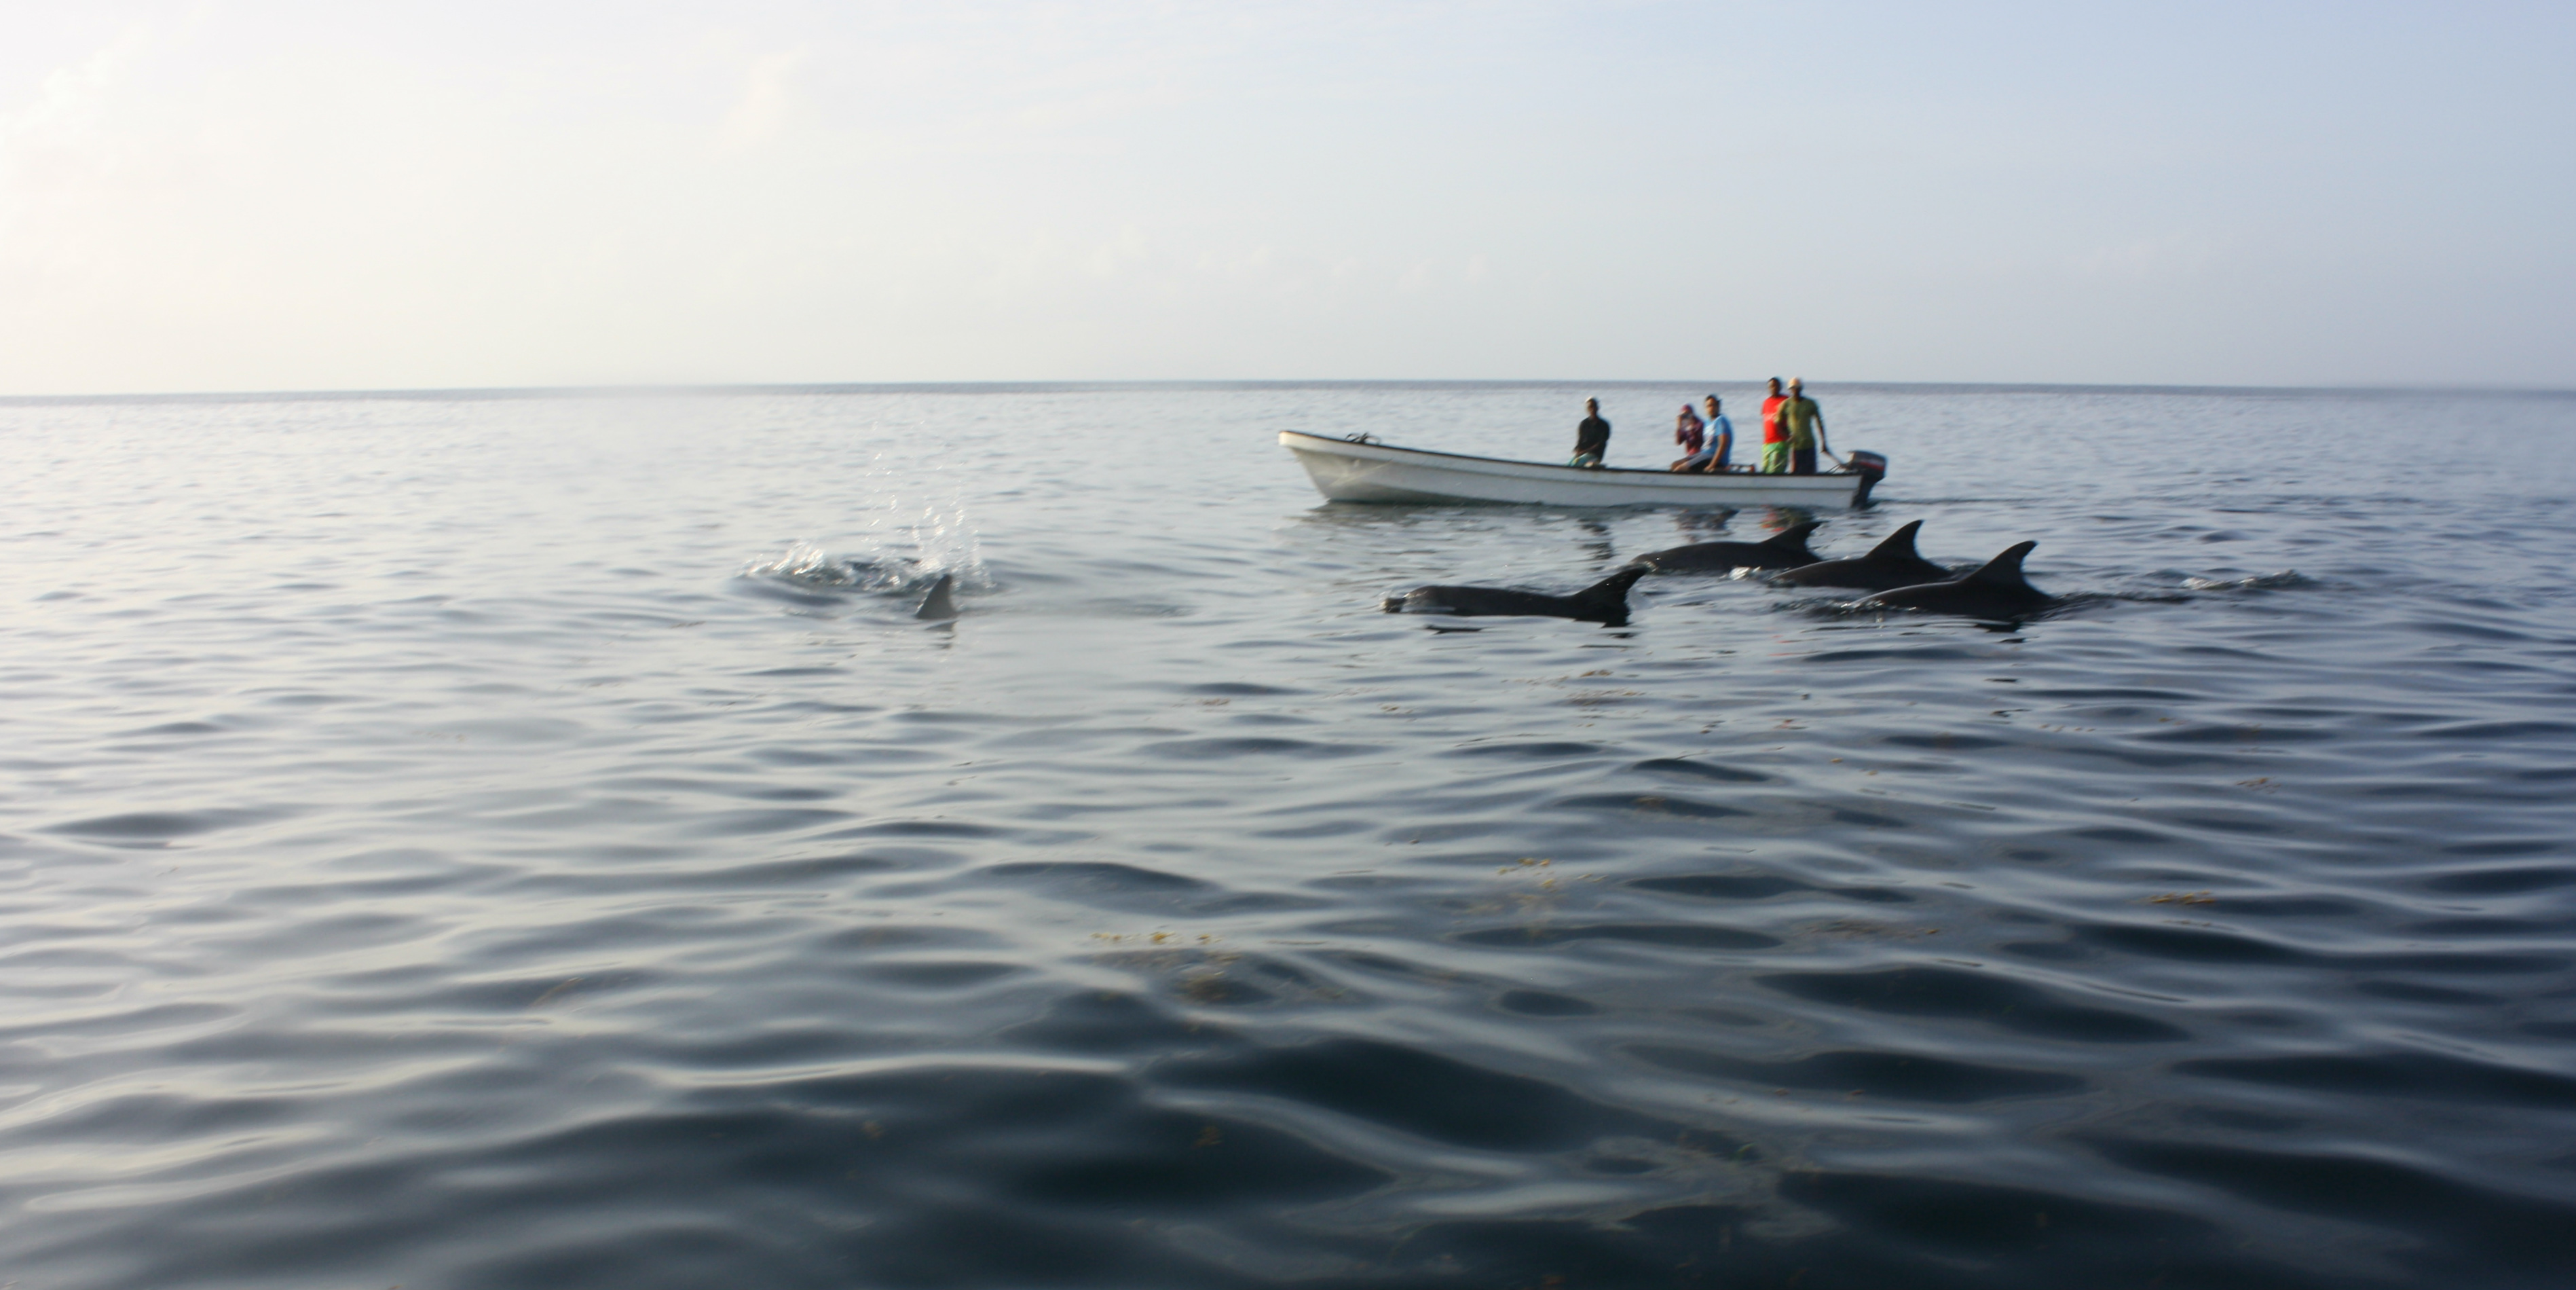 Volunteer Tanzania wildlife opportunities include monitoring dophin tourism.